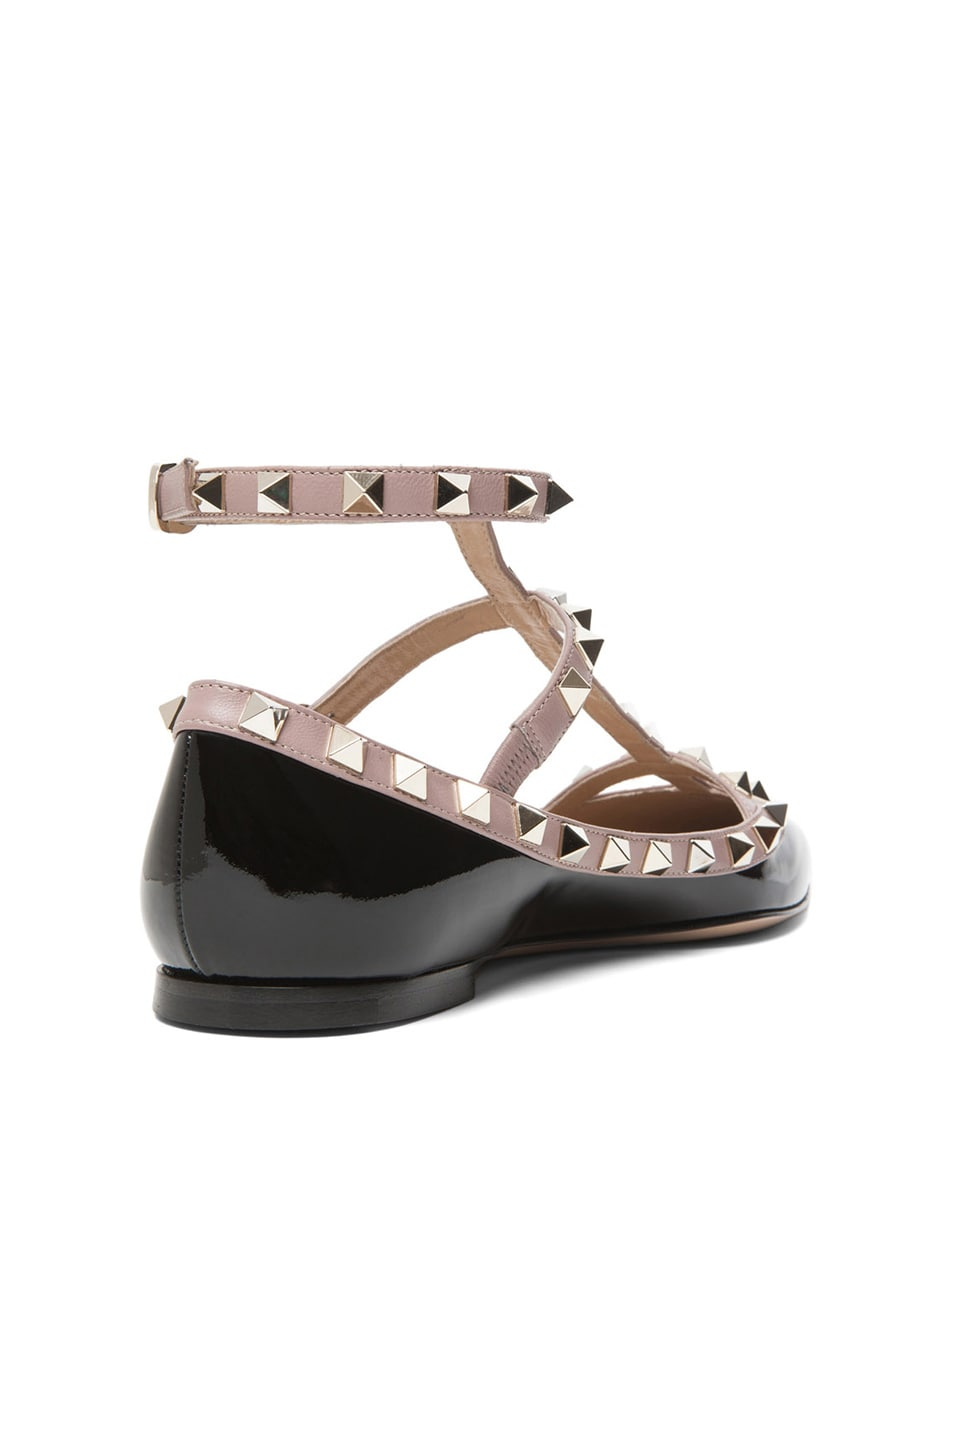 Image 3 of Valentino Rockstud Patent Cage Flats in Black & Nude